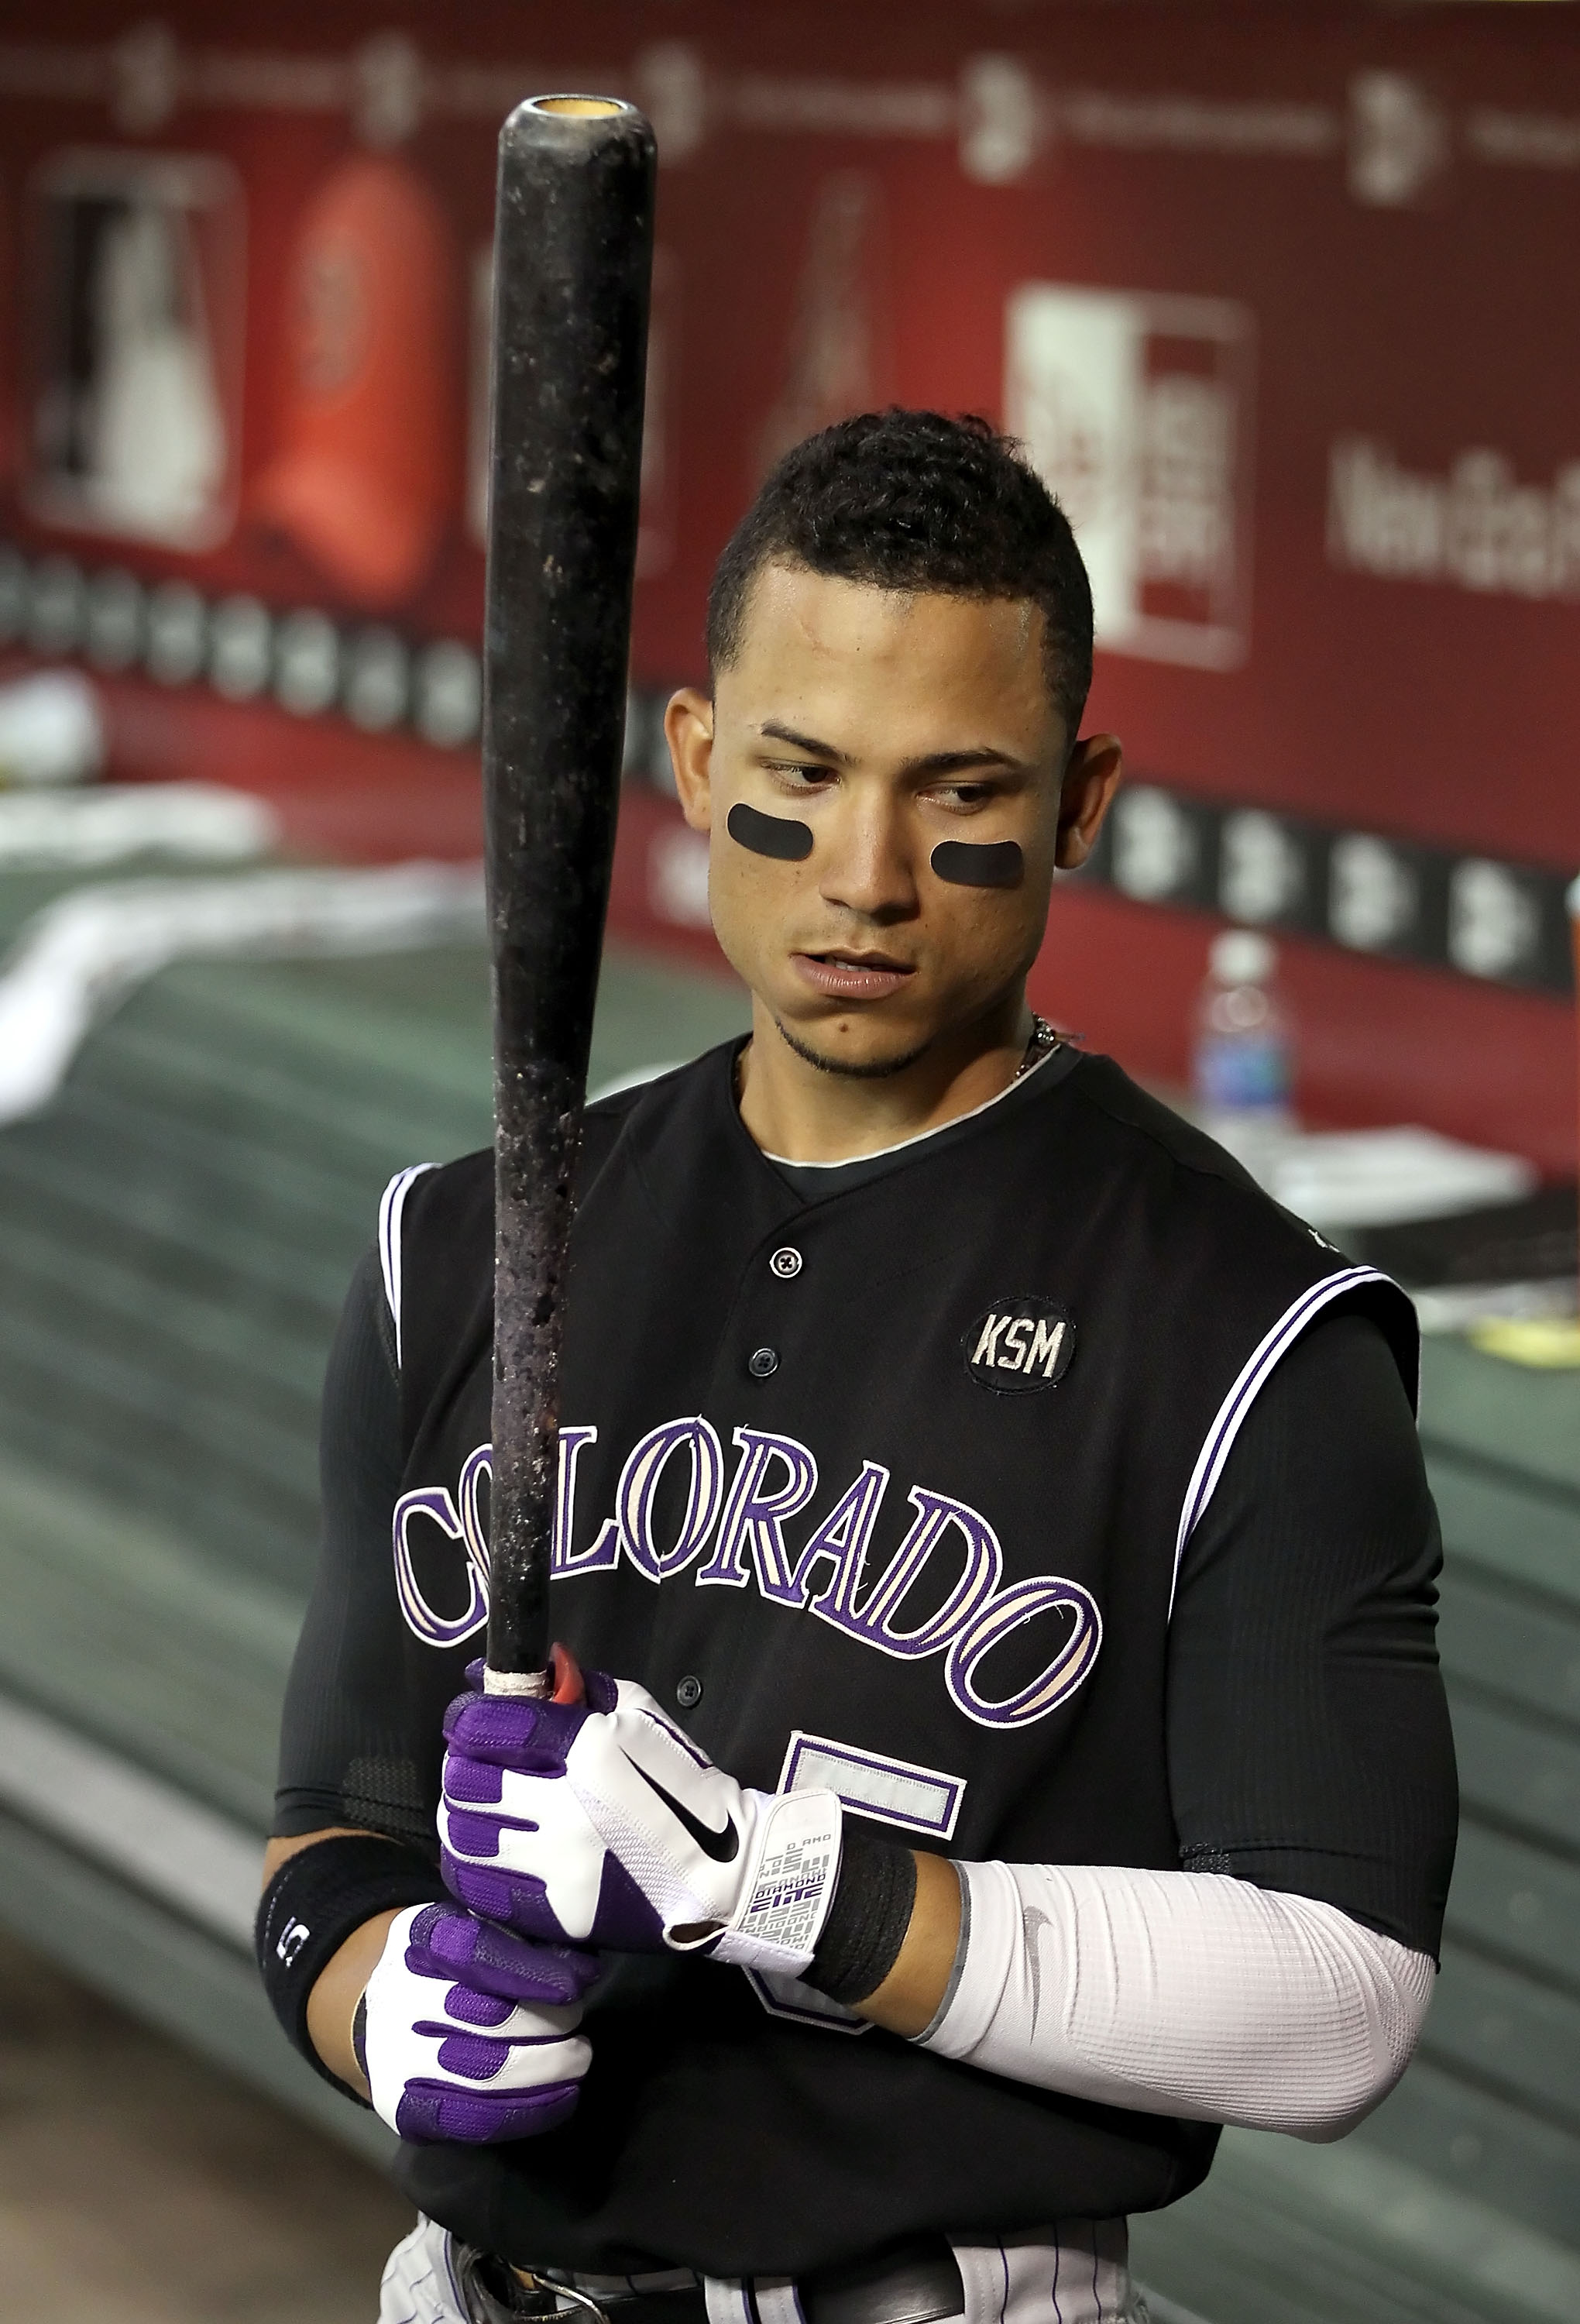 PHOENIX - SEPTEMBER 22:  Carlos Gonzalez #5 of the Colorado Rockies warms up in the dugout during the Major League Baseball game against the Arizona Diamondbacks at Chase Field on September 22, 2010 in Phoenix, Arizona.  (Photo by Christian Petersen/Getty